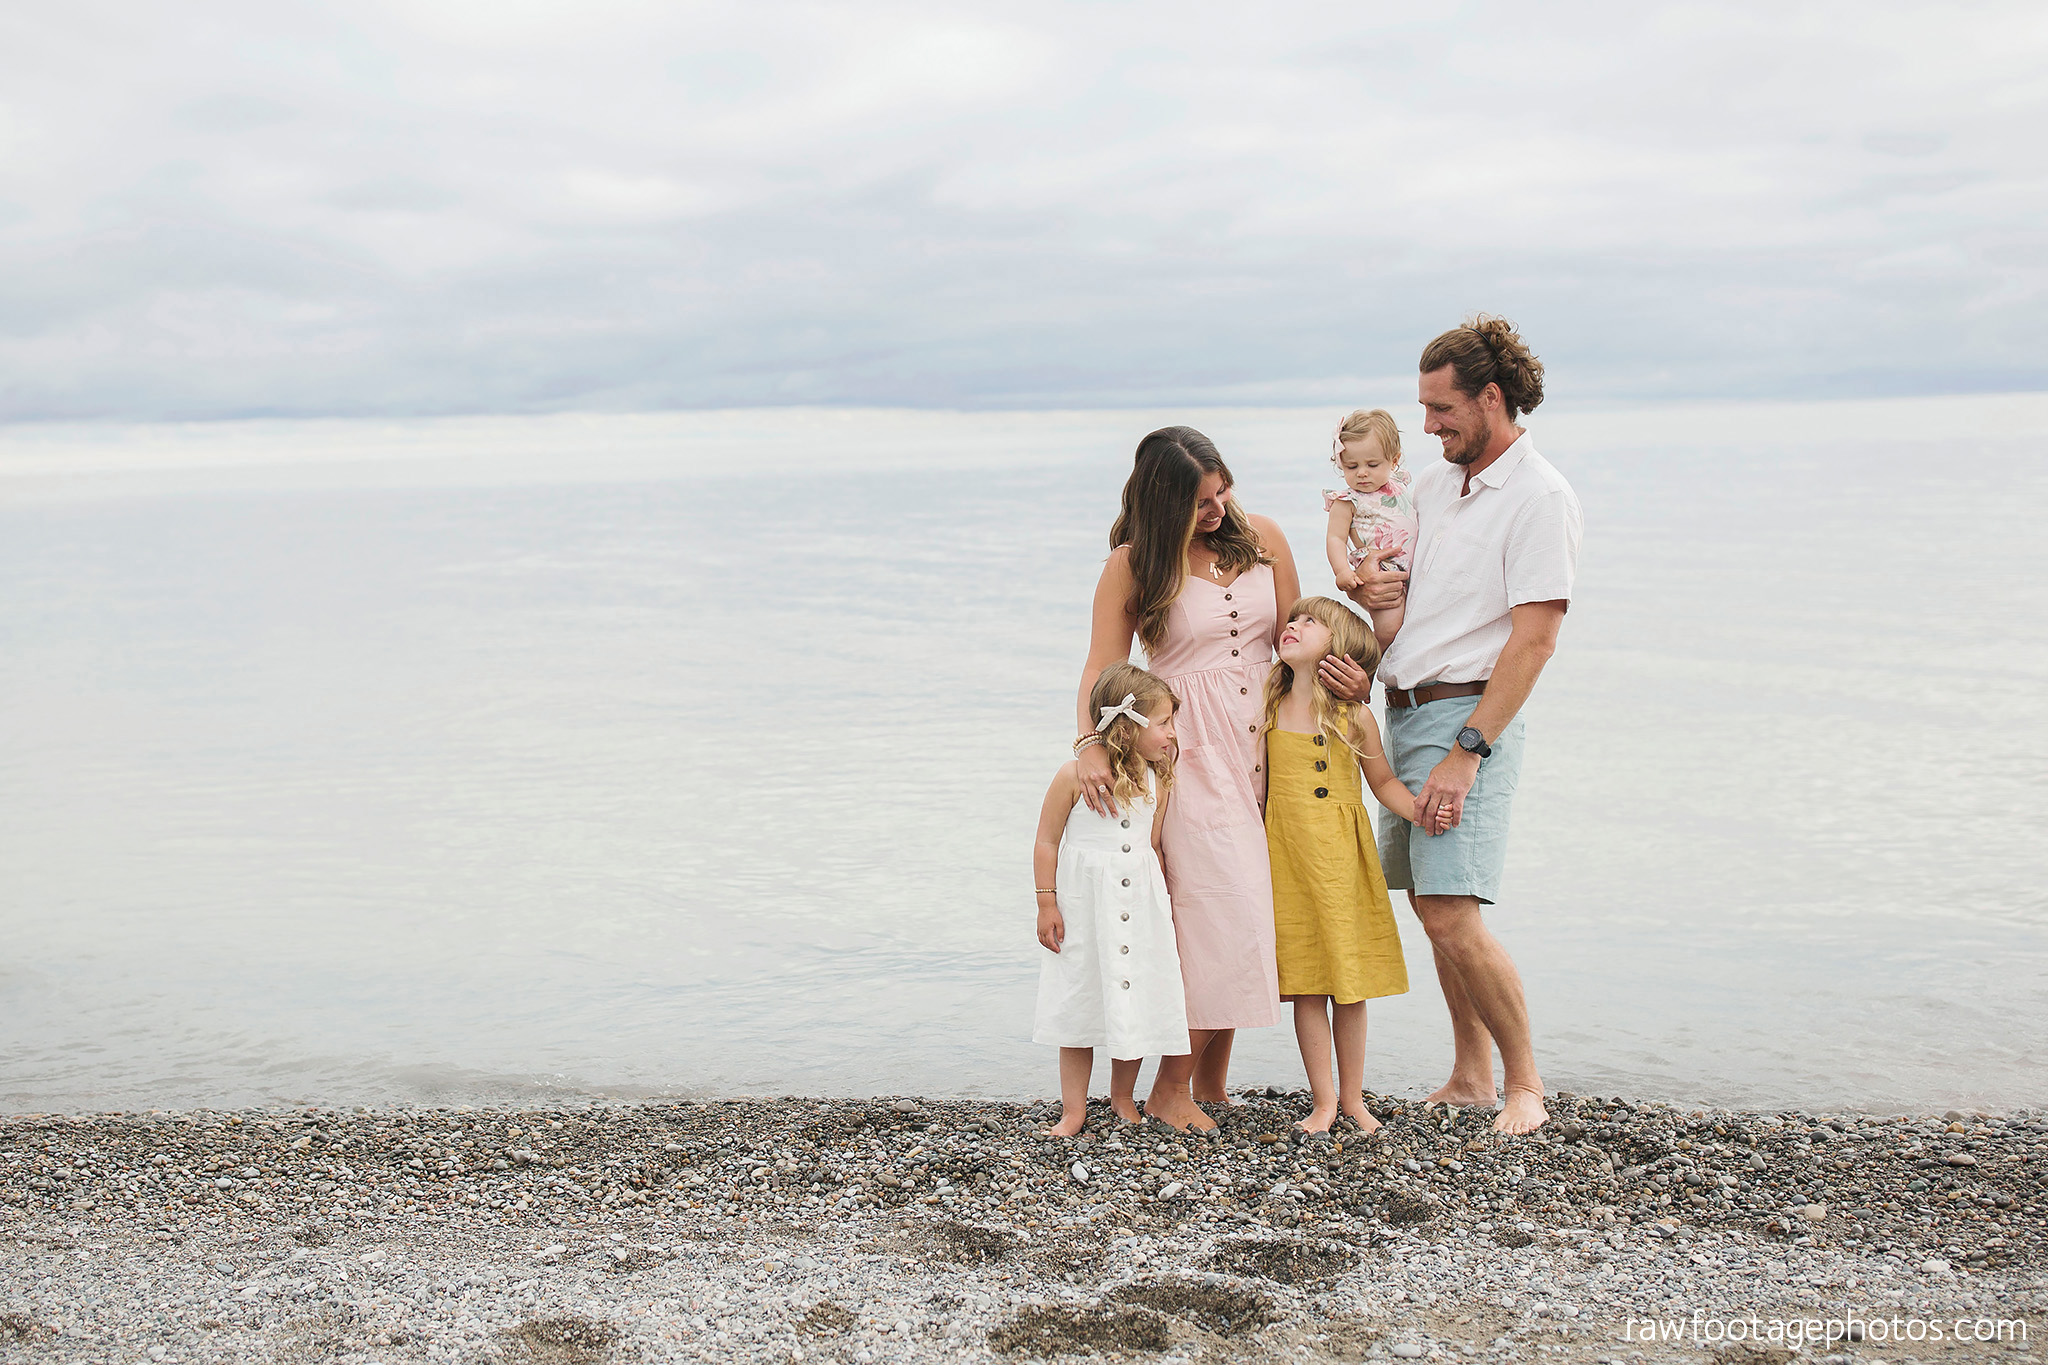 london_ontario_family_photographer-beach_minis-port_stanley_beach-raw_footage_photography047.jpg